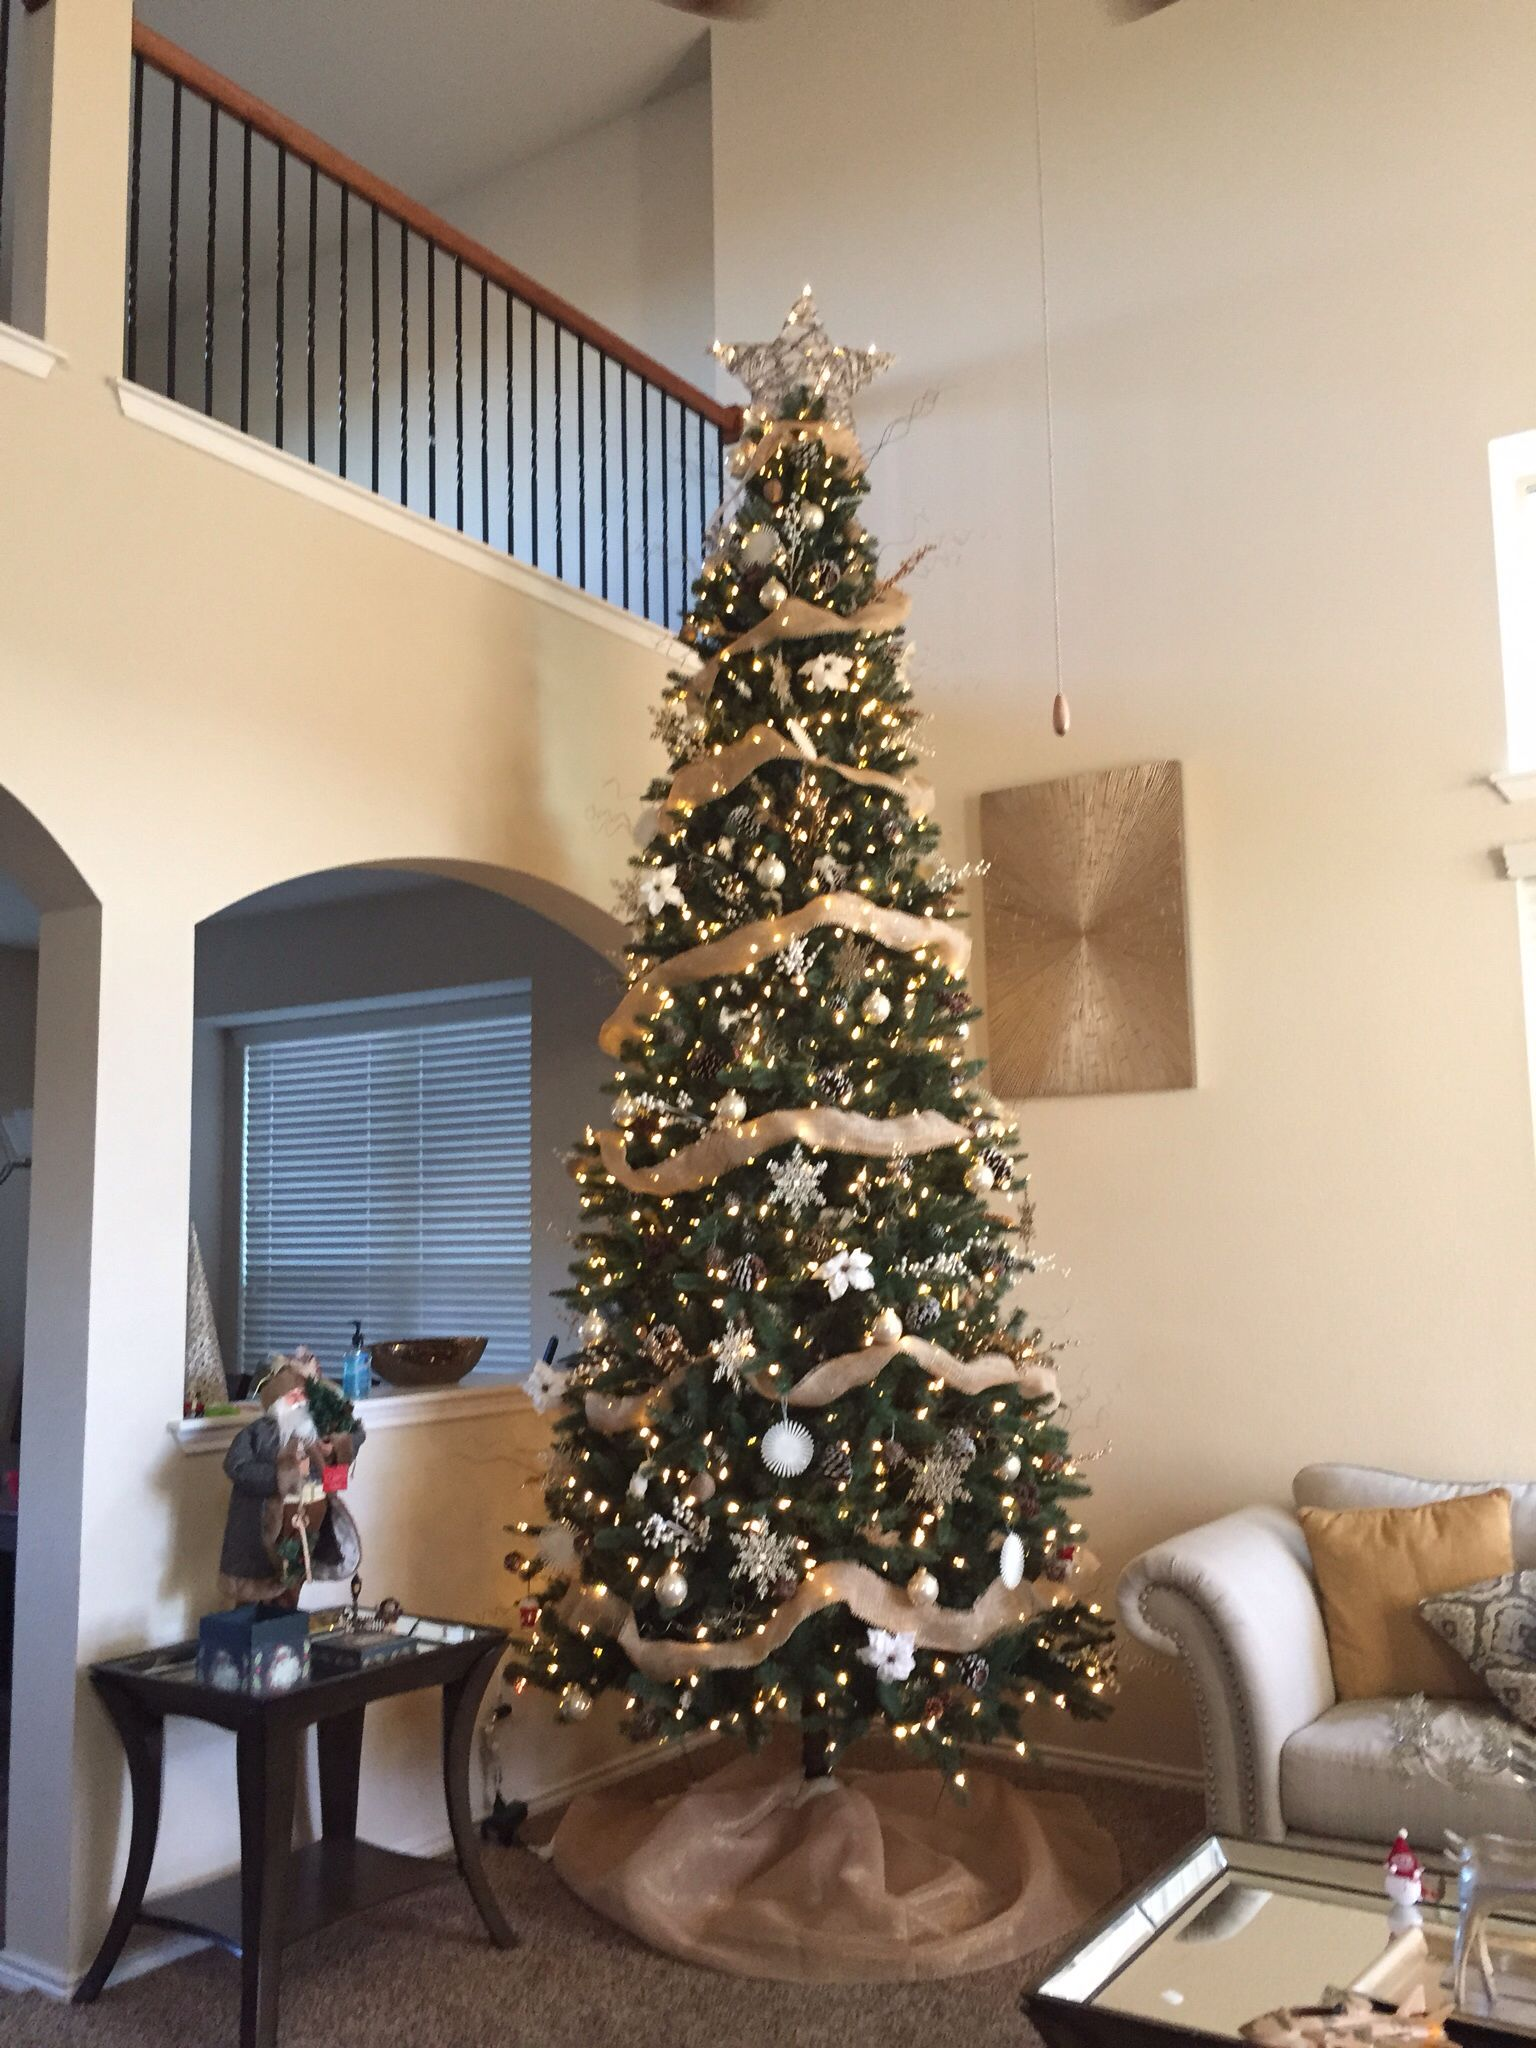 12 Ft Christmas Tree Christmas Tree Christmas Tree Images Christmas Tree Decorations